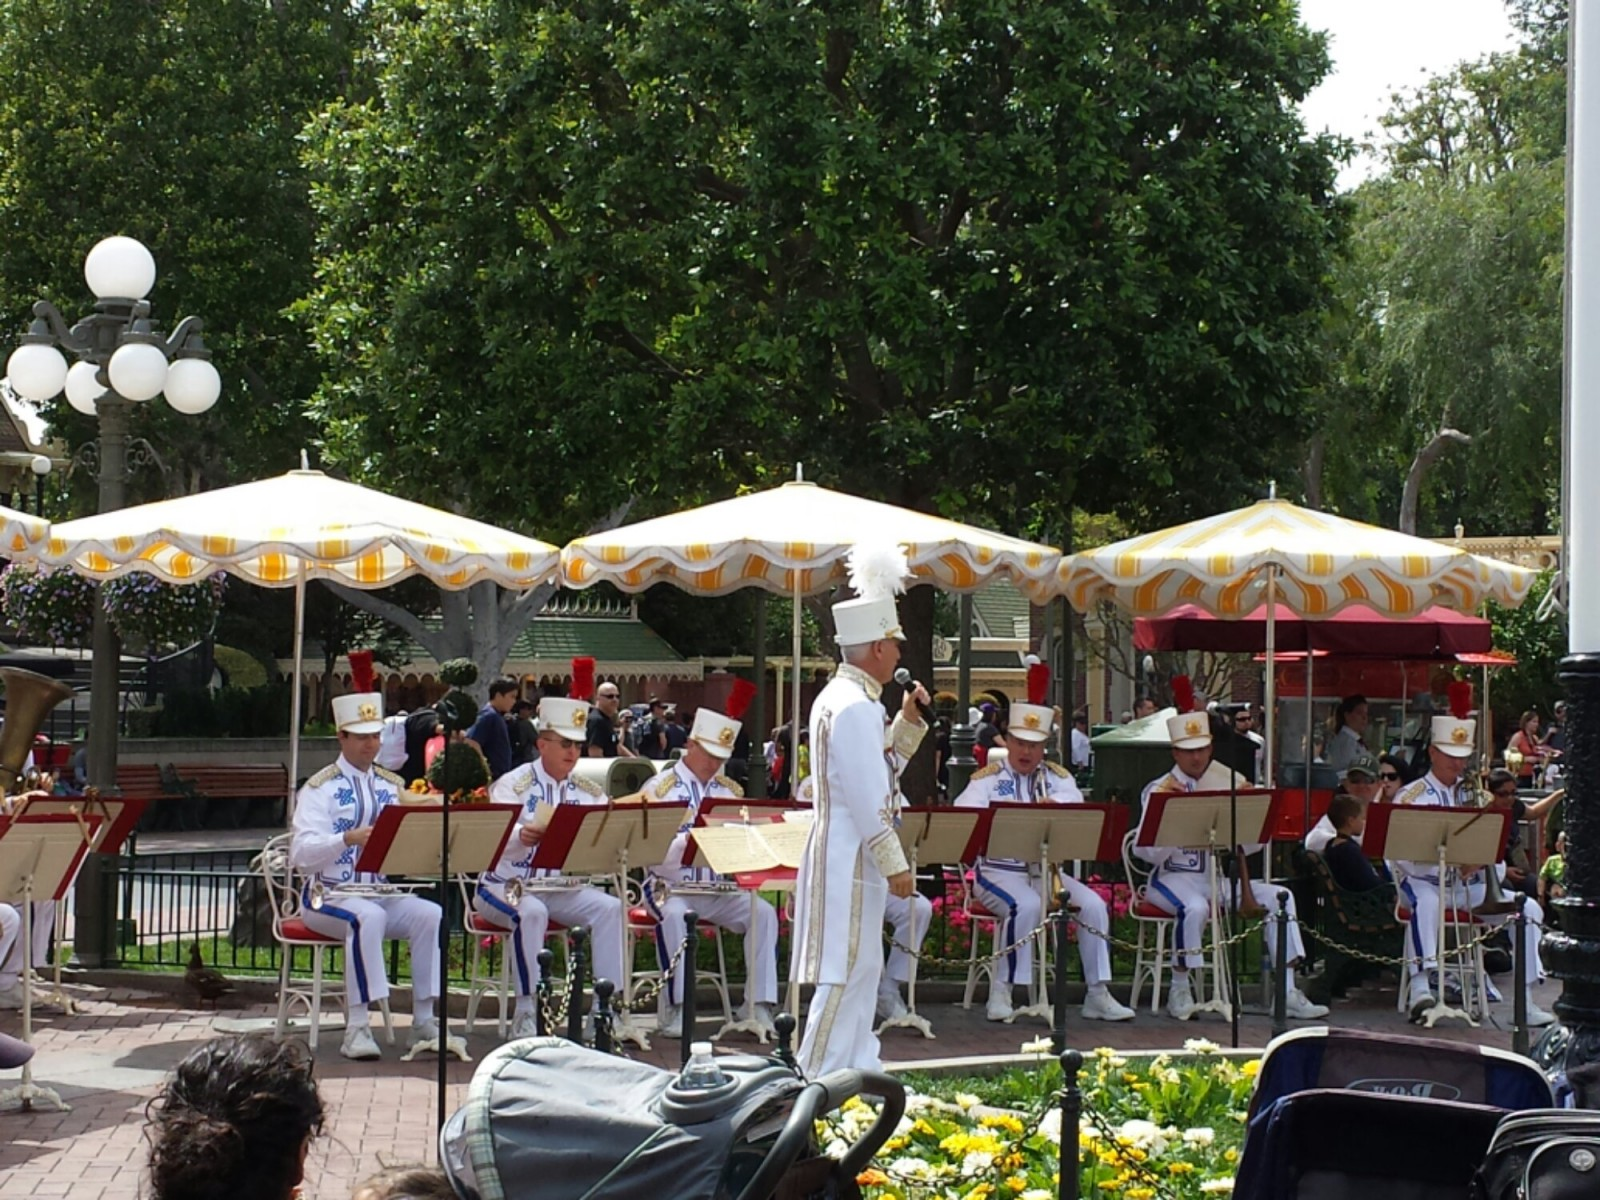 The #Disneyland Band was performing in Town Square when I arrived